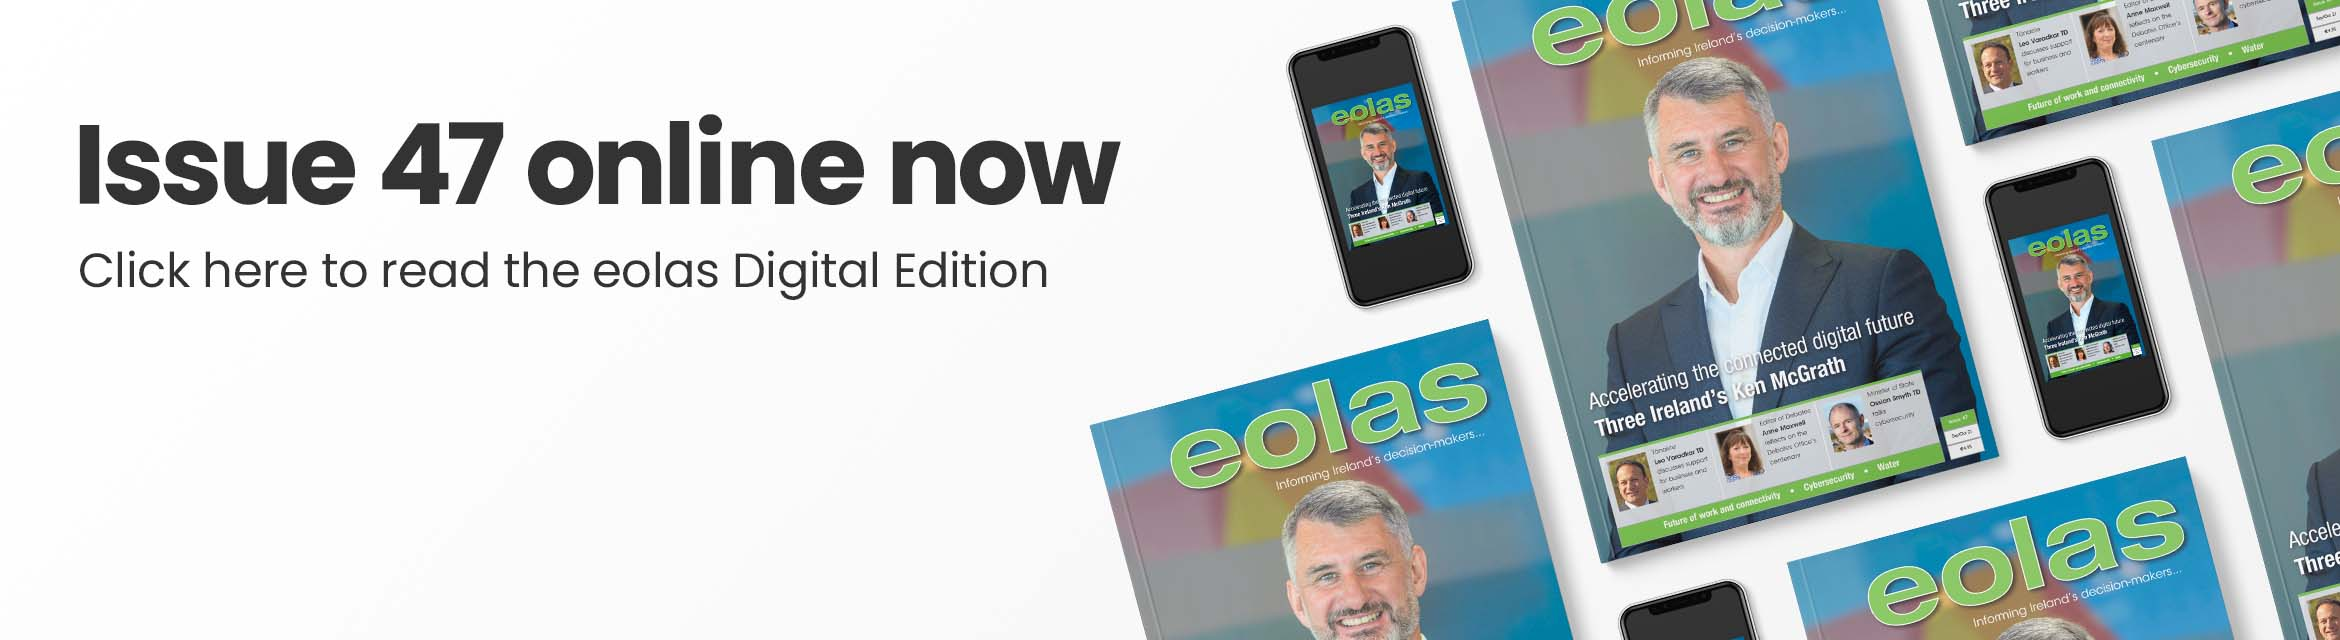 Issue 47 online now • Read the eolas Digital Edition